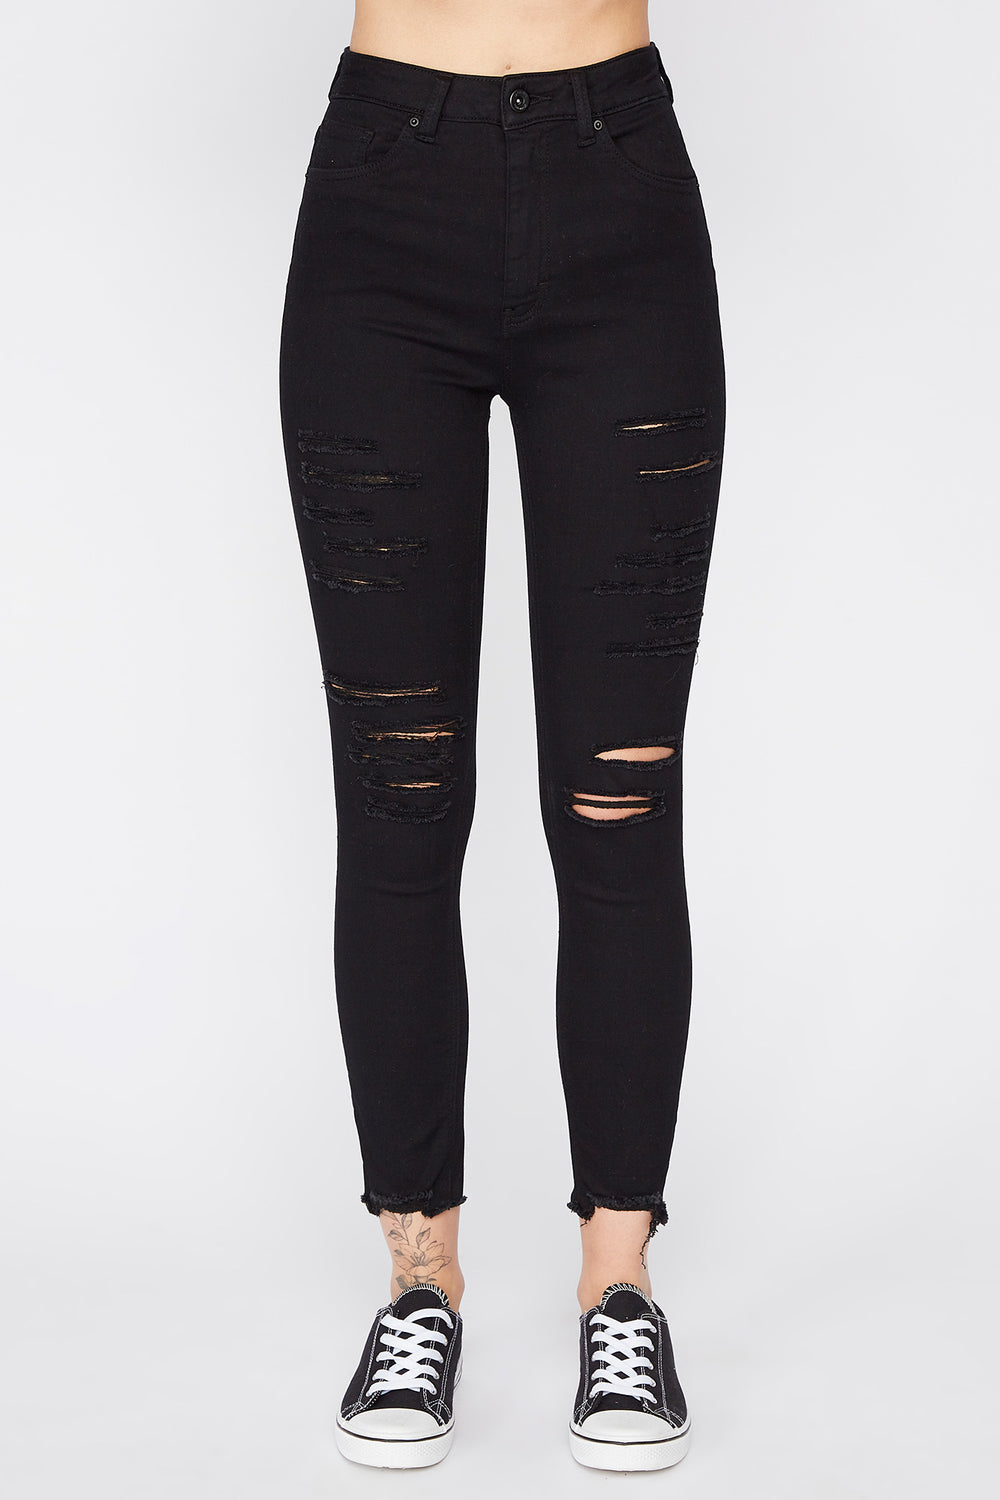 Zoo York Womens Distressed Black High Rise Jeans Black